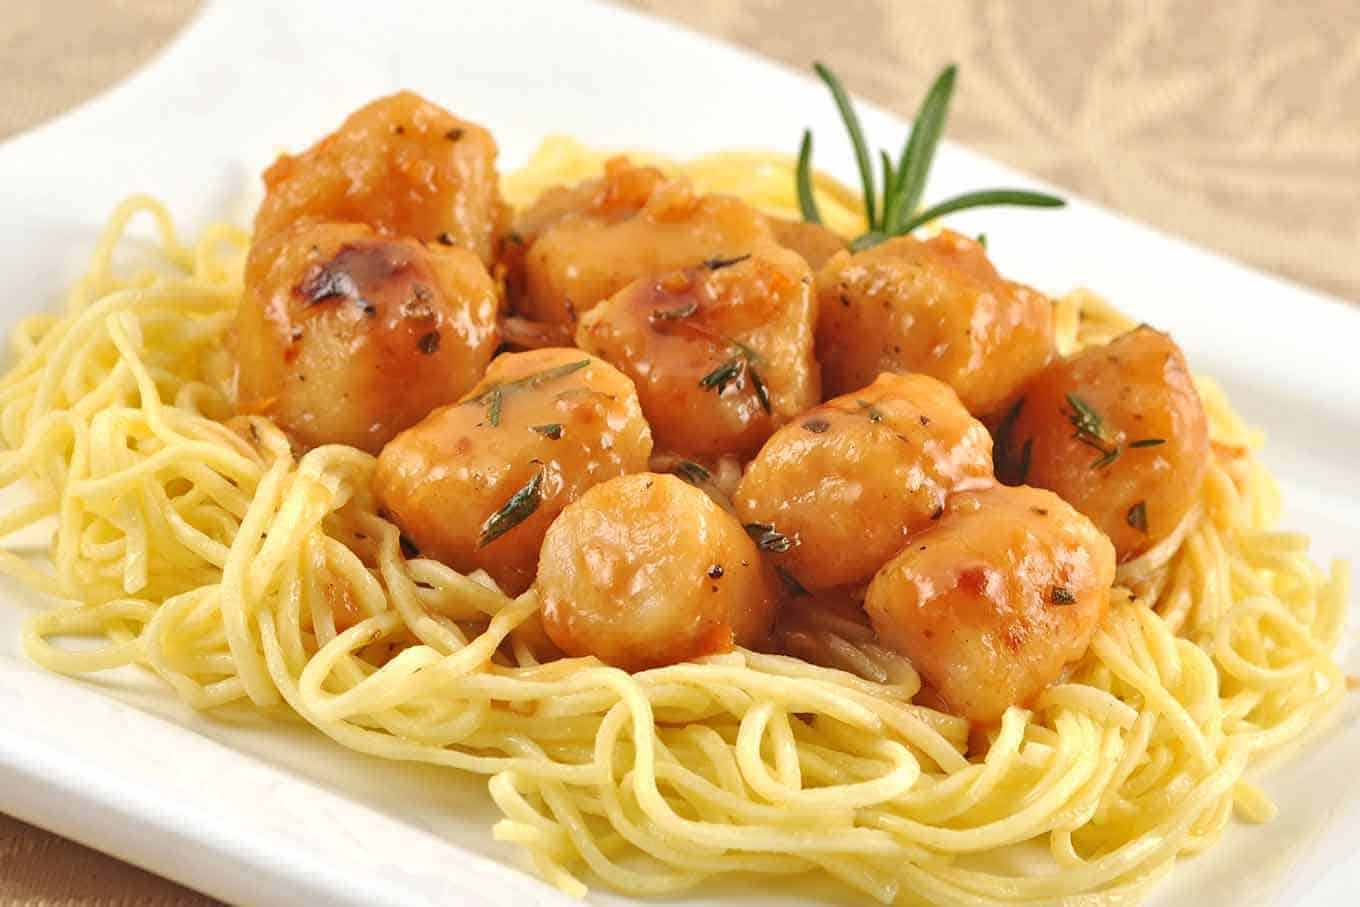 Sicilian-style citrus scallops served over spaghetti on a serving plate